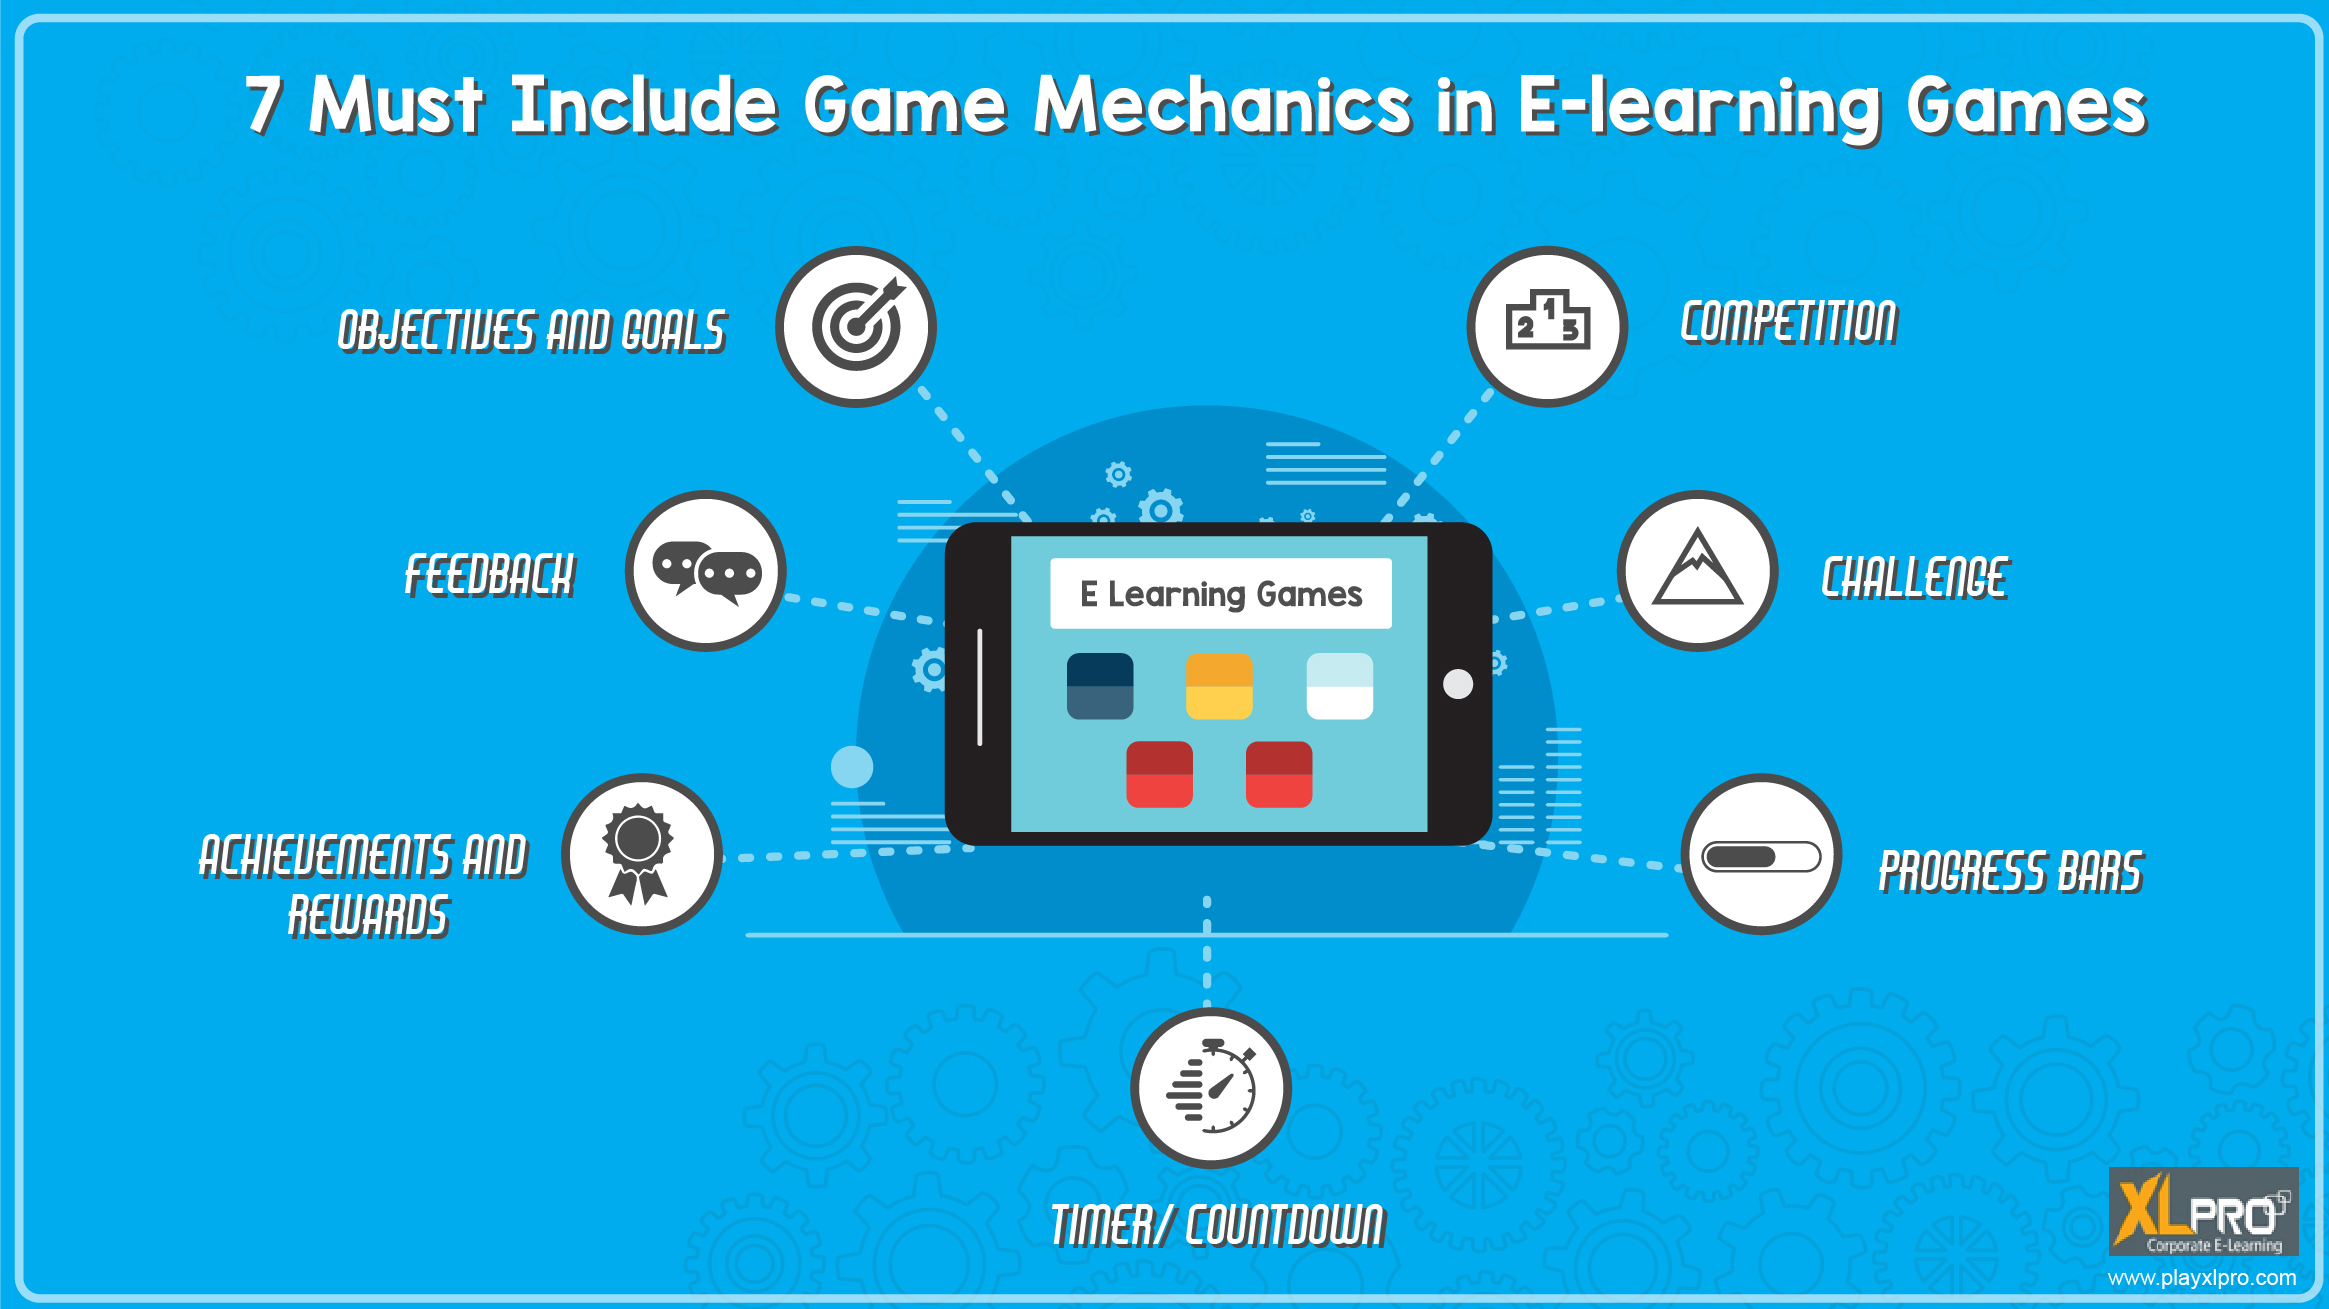 Infographic with 7 icons depicting game mechanics in e-learning games